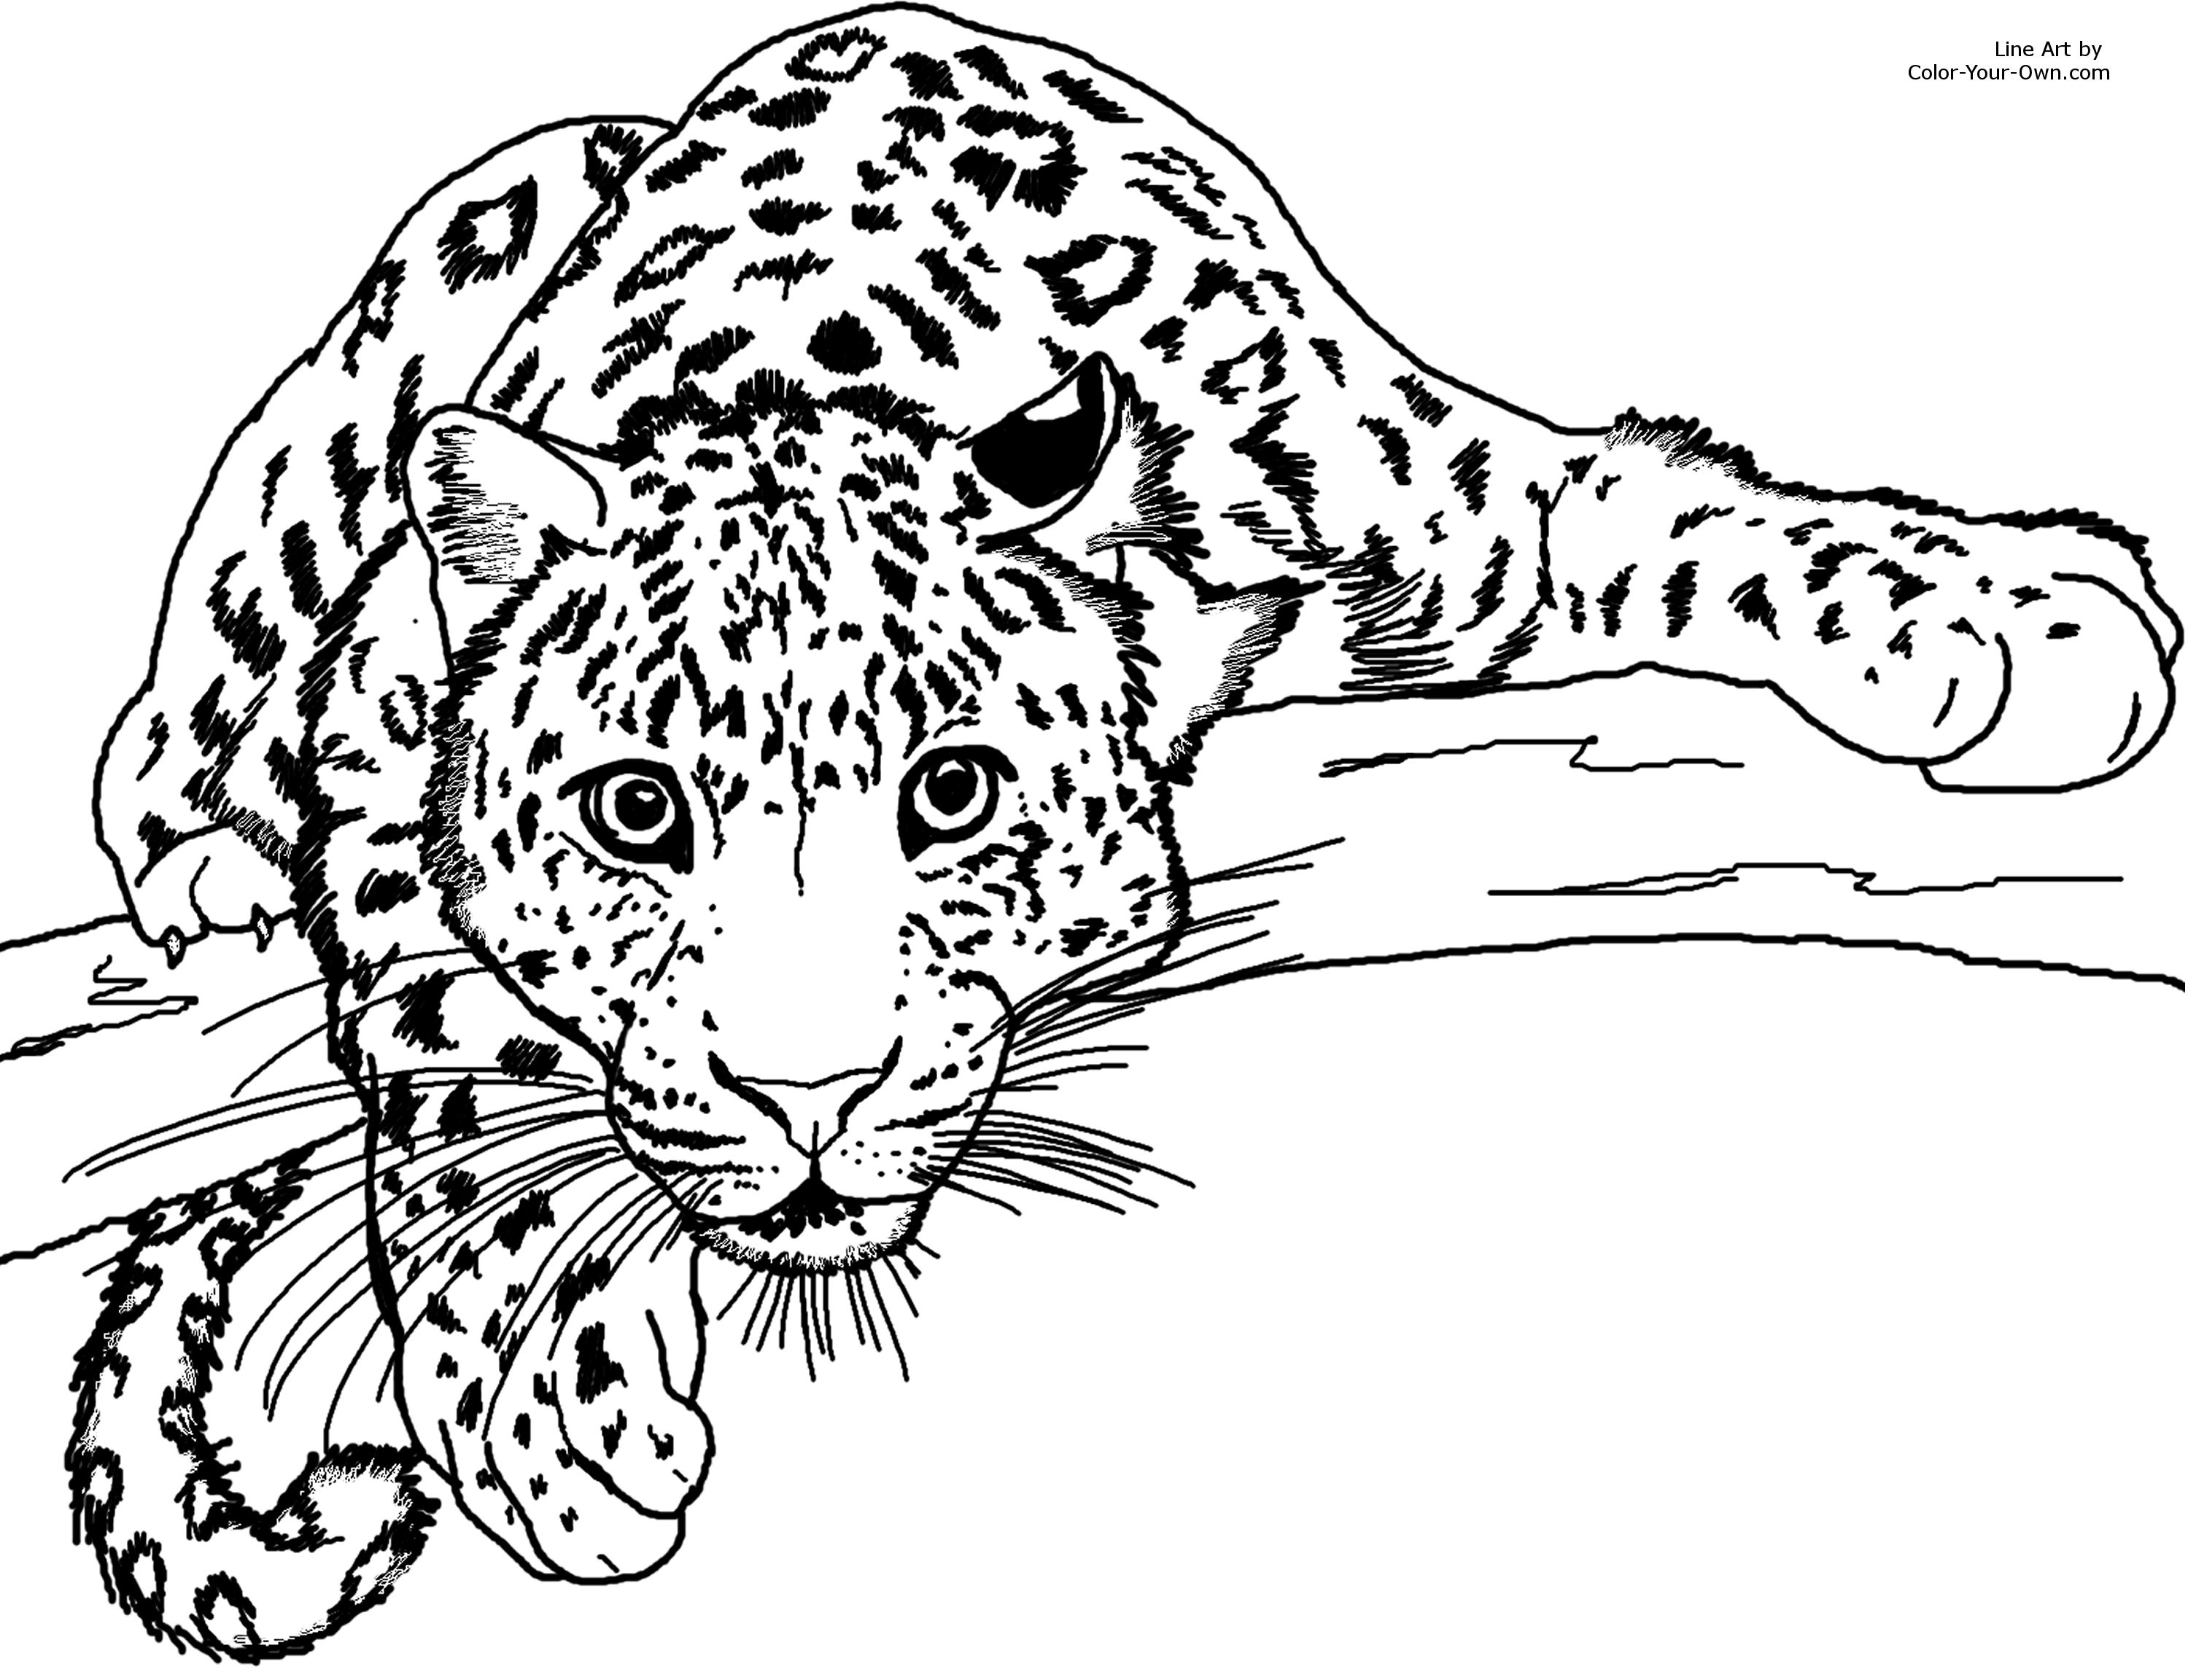 coloring pages 8 x 10 - photo#4